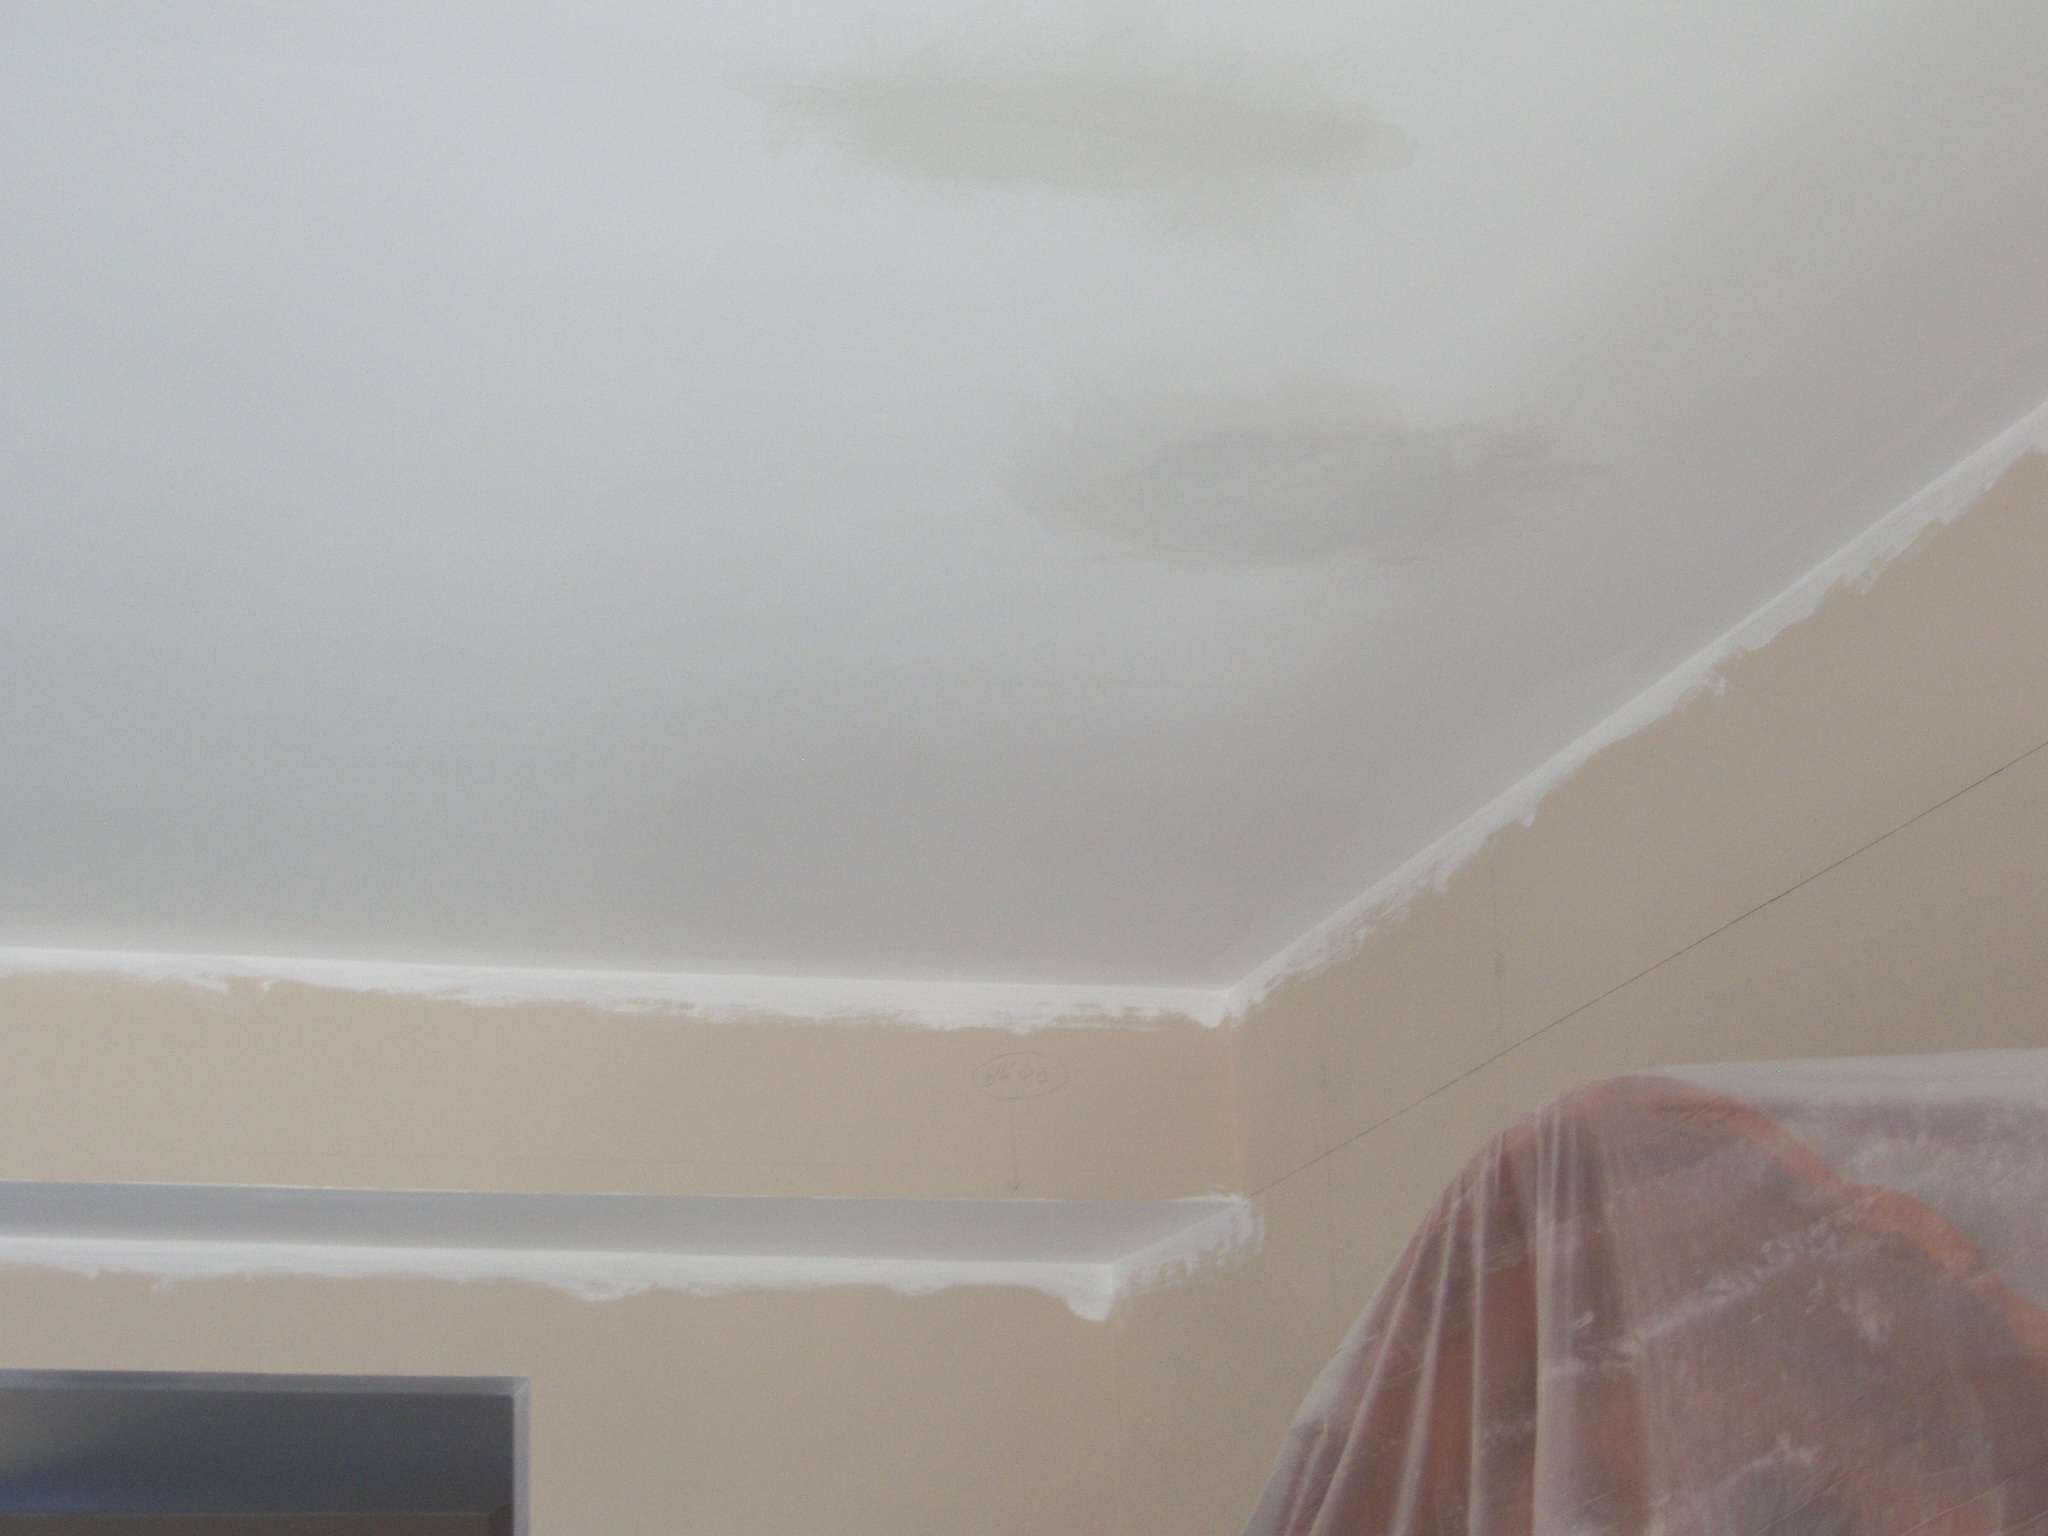 How To Remove Painted Popcorn Texture From Ceiling